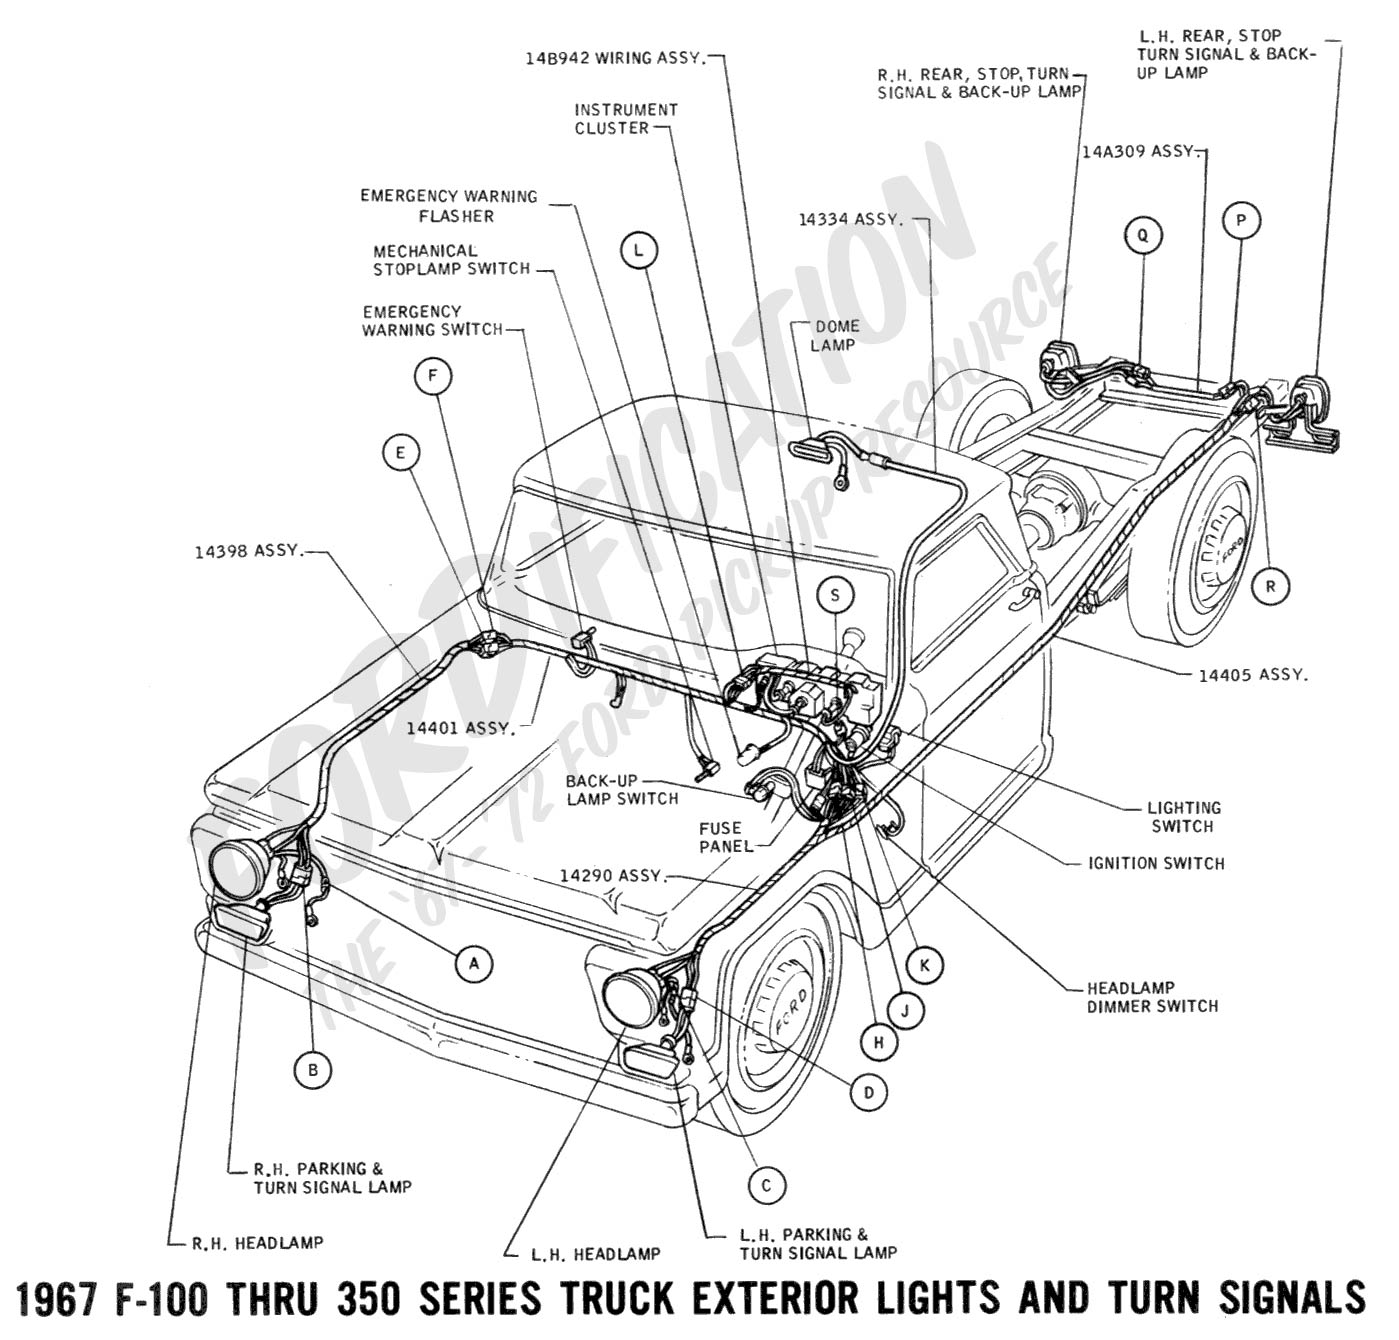 wiring 1967extlights01 ford truck technical drawings and schematics section h wiring 2008 ford ranger electrical wiring diagram at bayanpartner.co